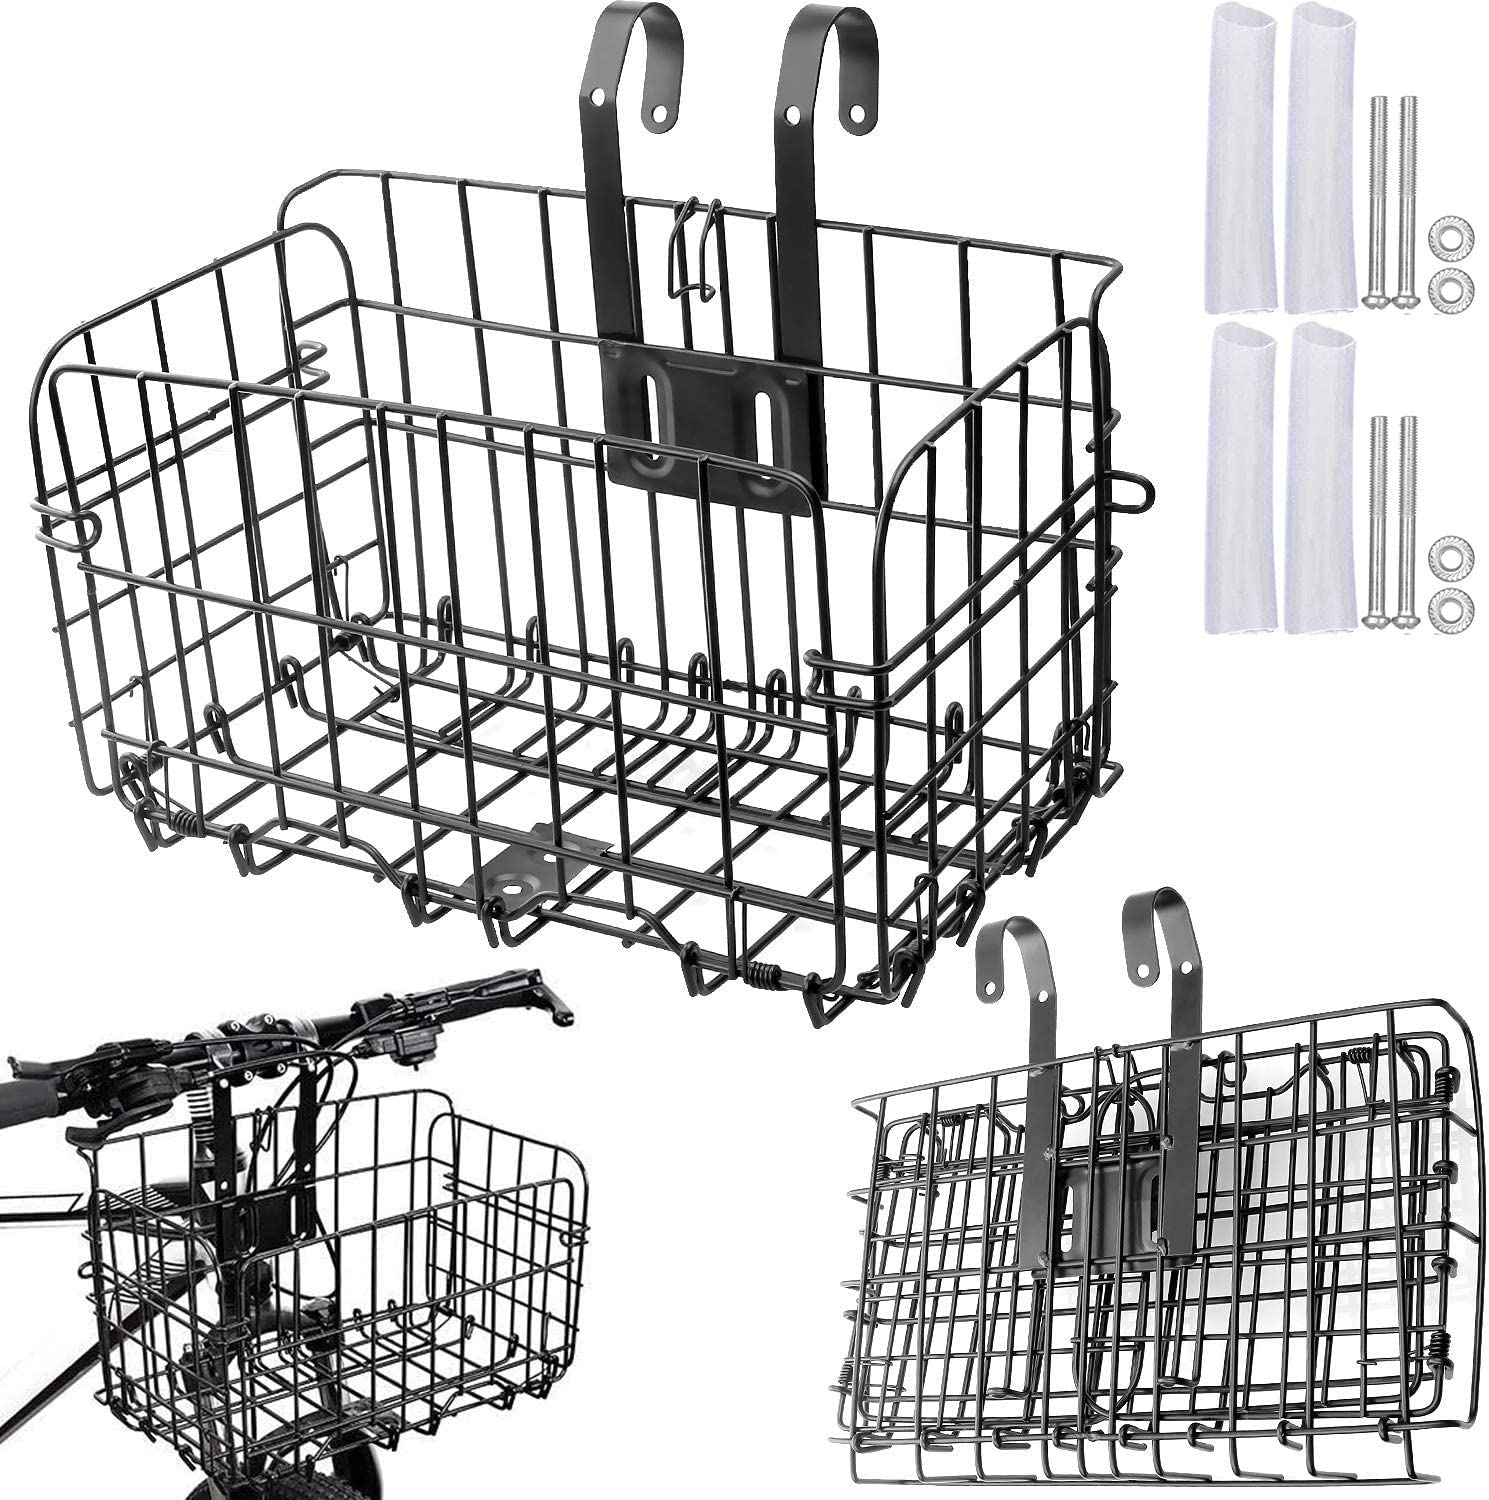 2PCS Folding Rear Bike Basket, Heavy Duty Wire Mesh Bicycle Basket with Handle Easy Install to Front Handlebar or Rear Rack, 66lbs Capacity Bicycle Bag Cargo Rack for Commuter Grocery Shopping, Black